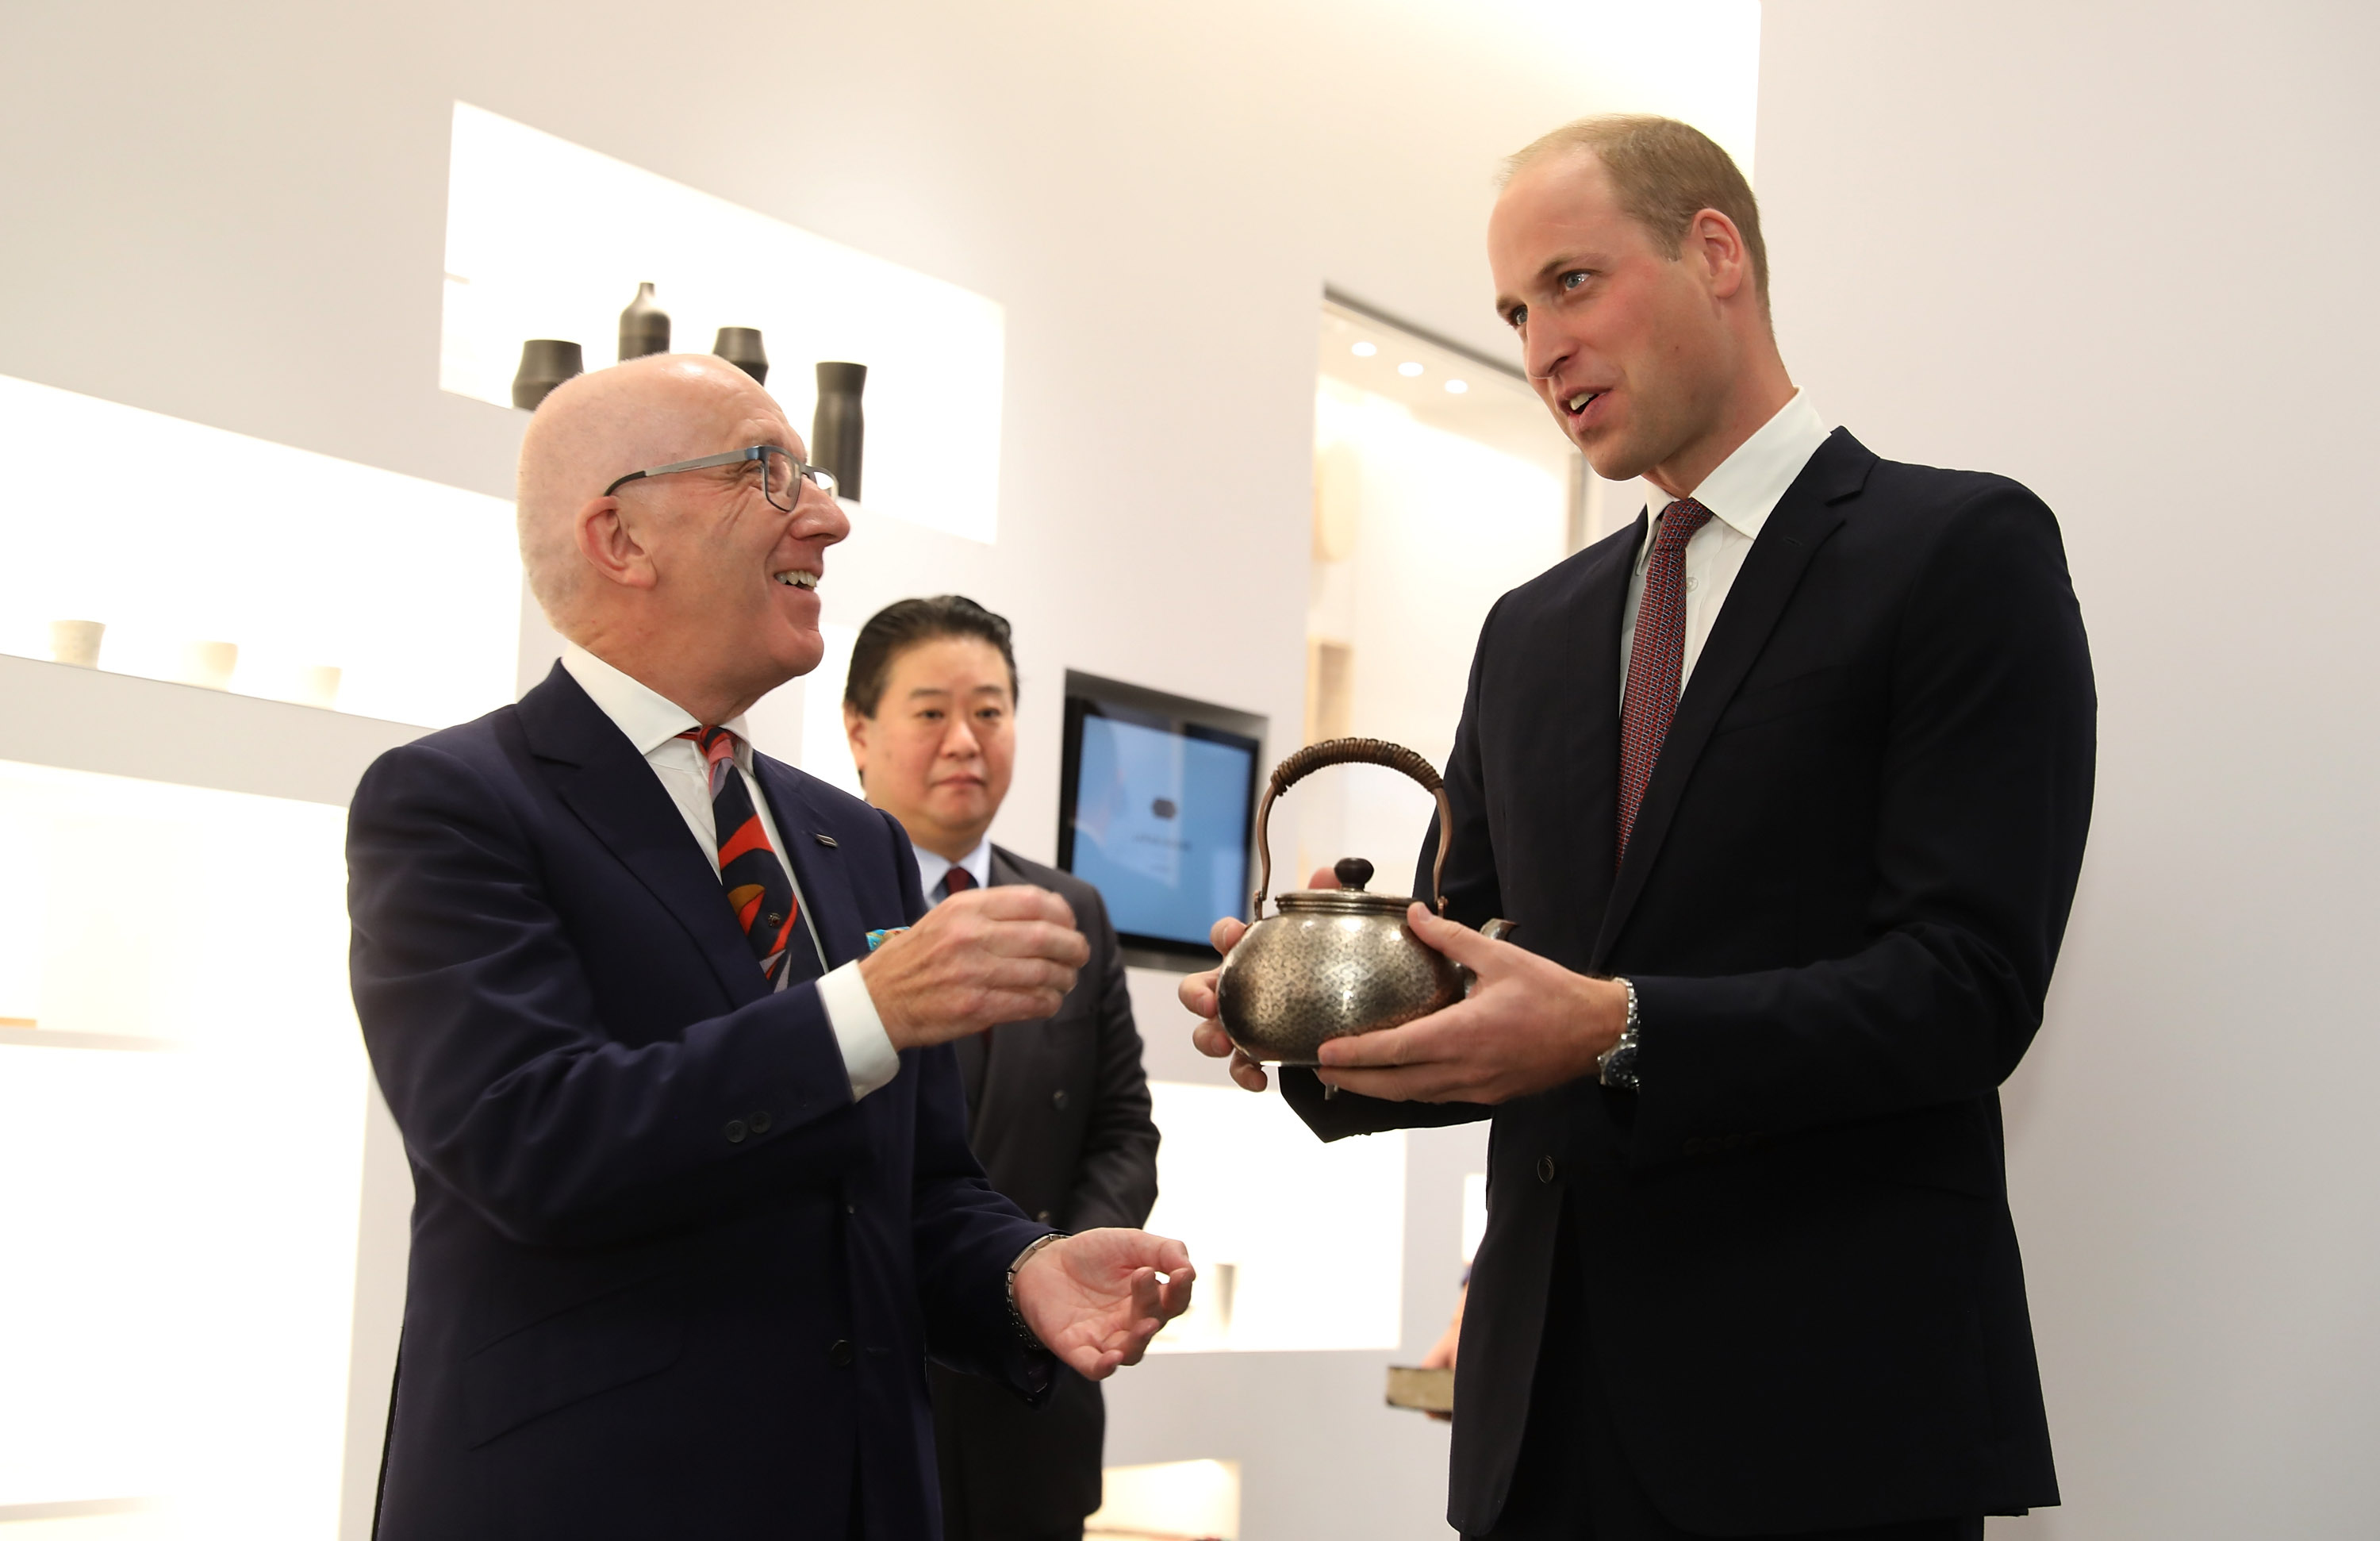 William briefly muddles Japan and China at opening of Japanese cultural centre